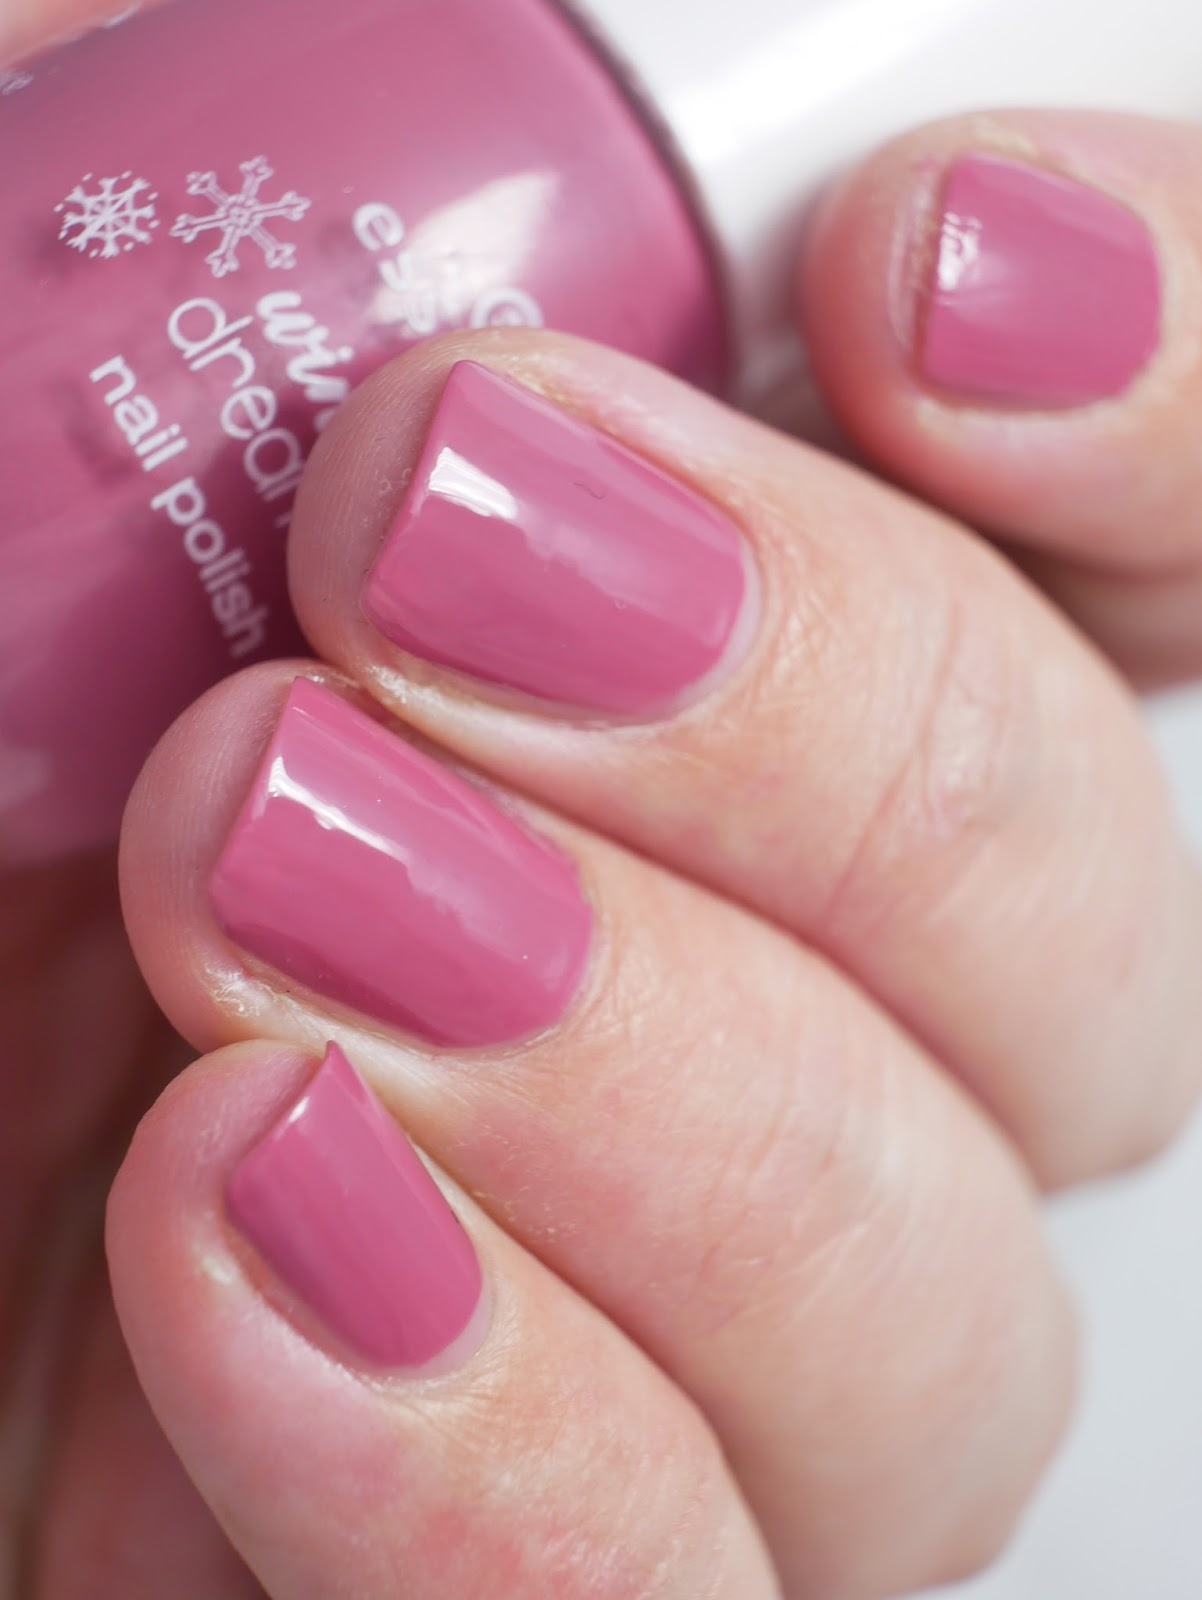 Welcher Topper Ist Der Richtige Lackverliebt Essence Winter Dreamin 39 04 Girlstalk At